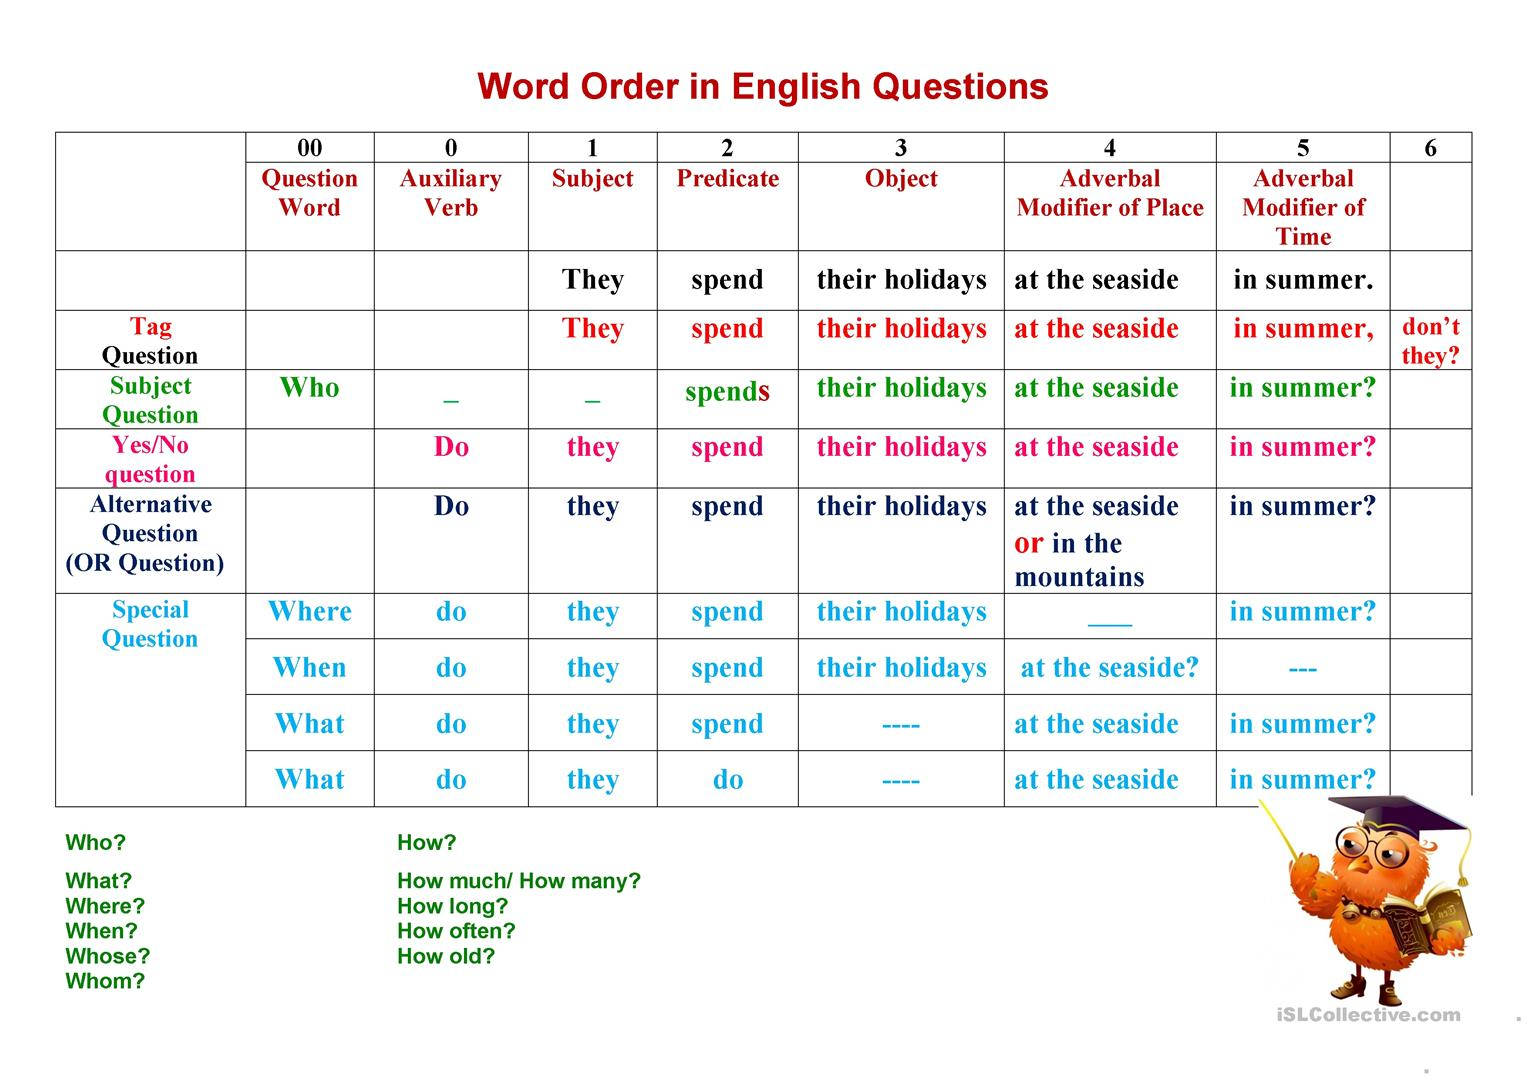 Types Of Questions Word Order In An English Questi Grammar